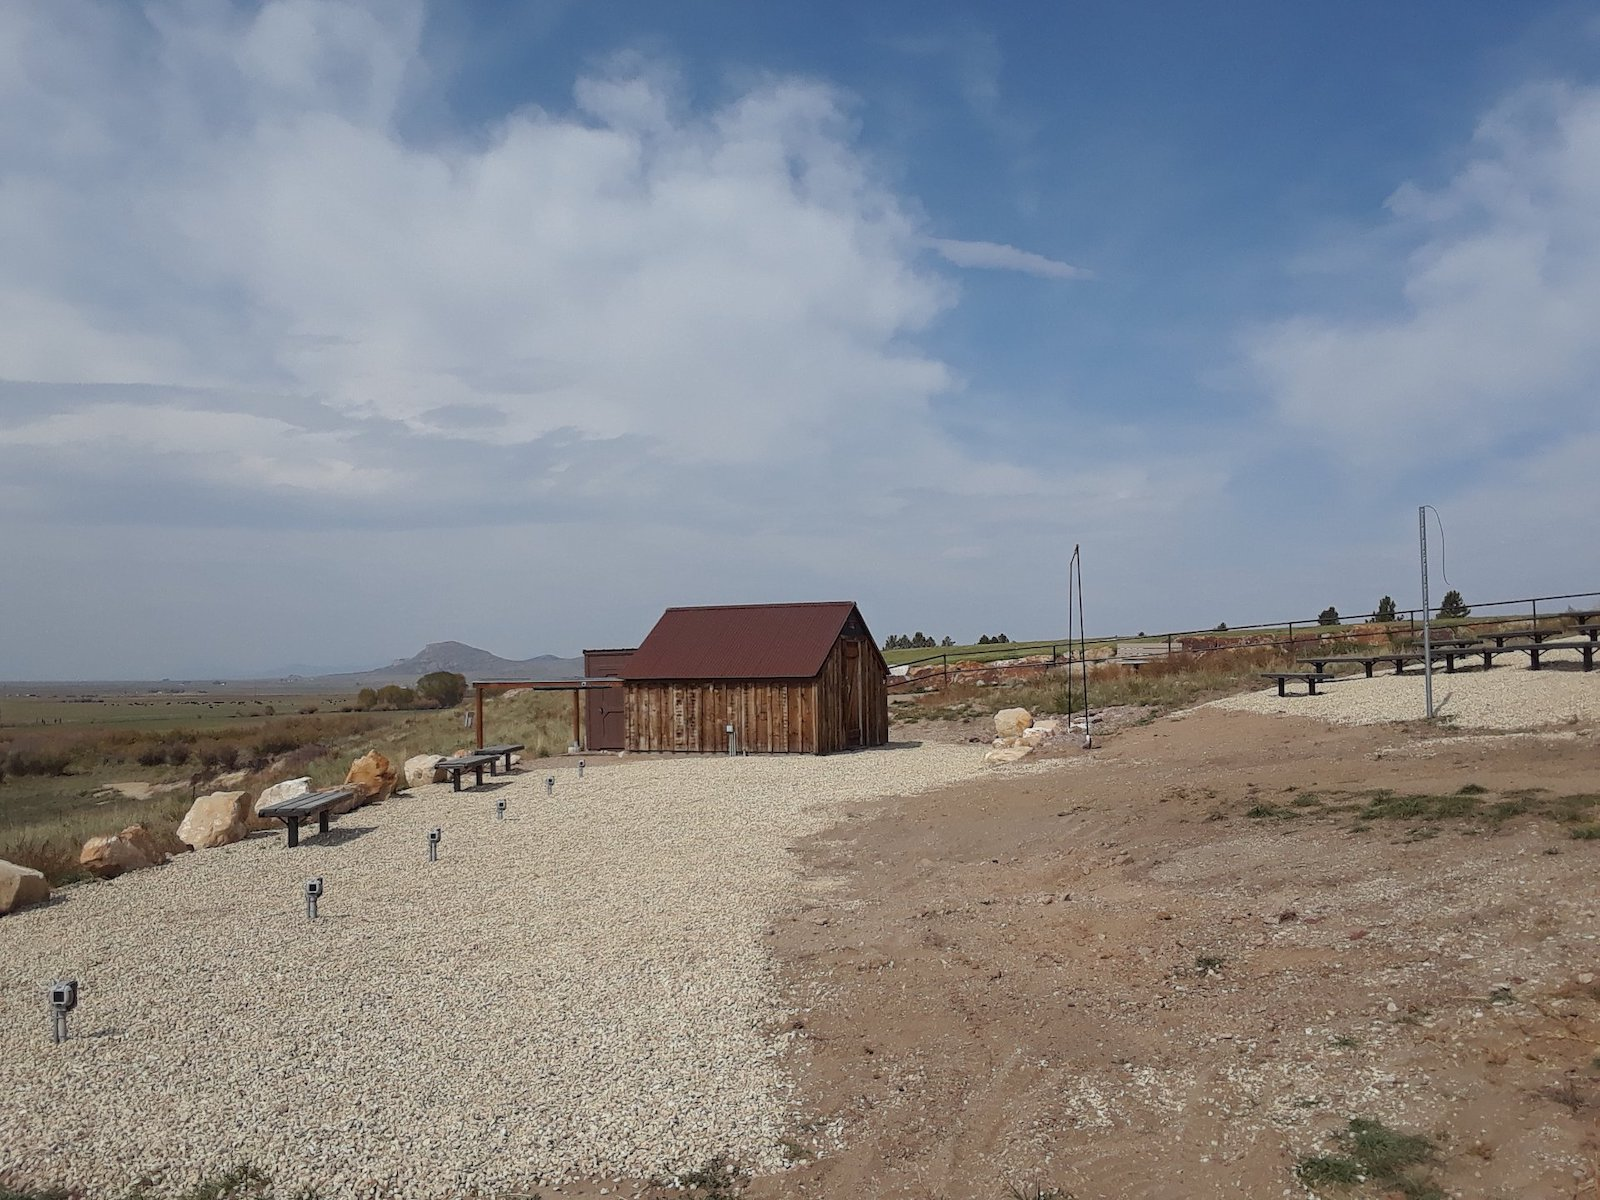 Image of the Smokey Jack Observatory in Colorado